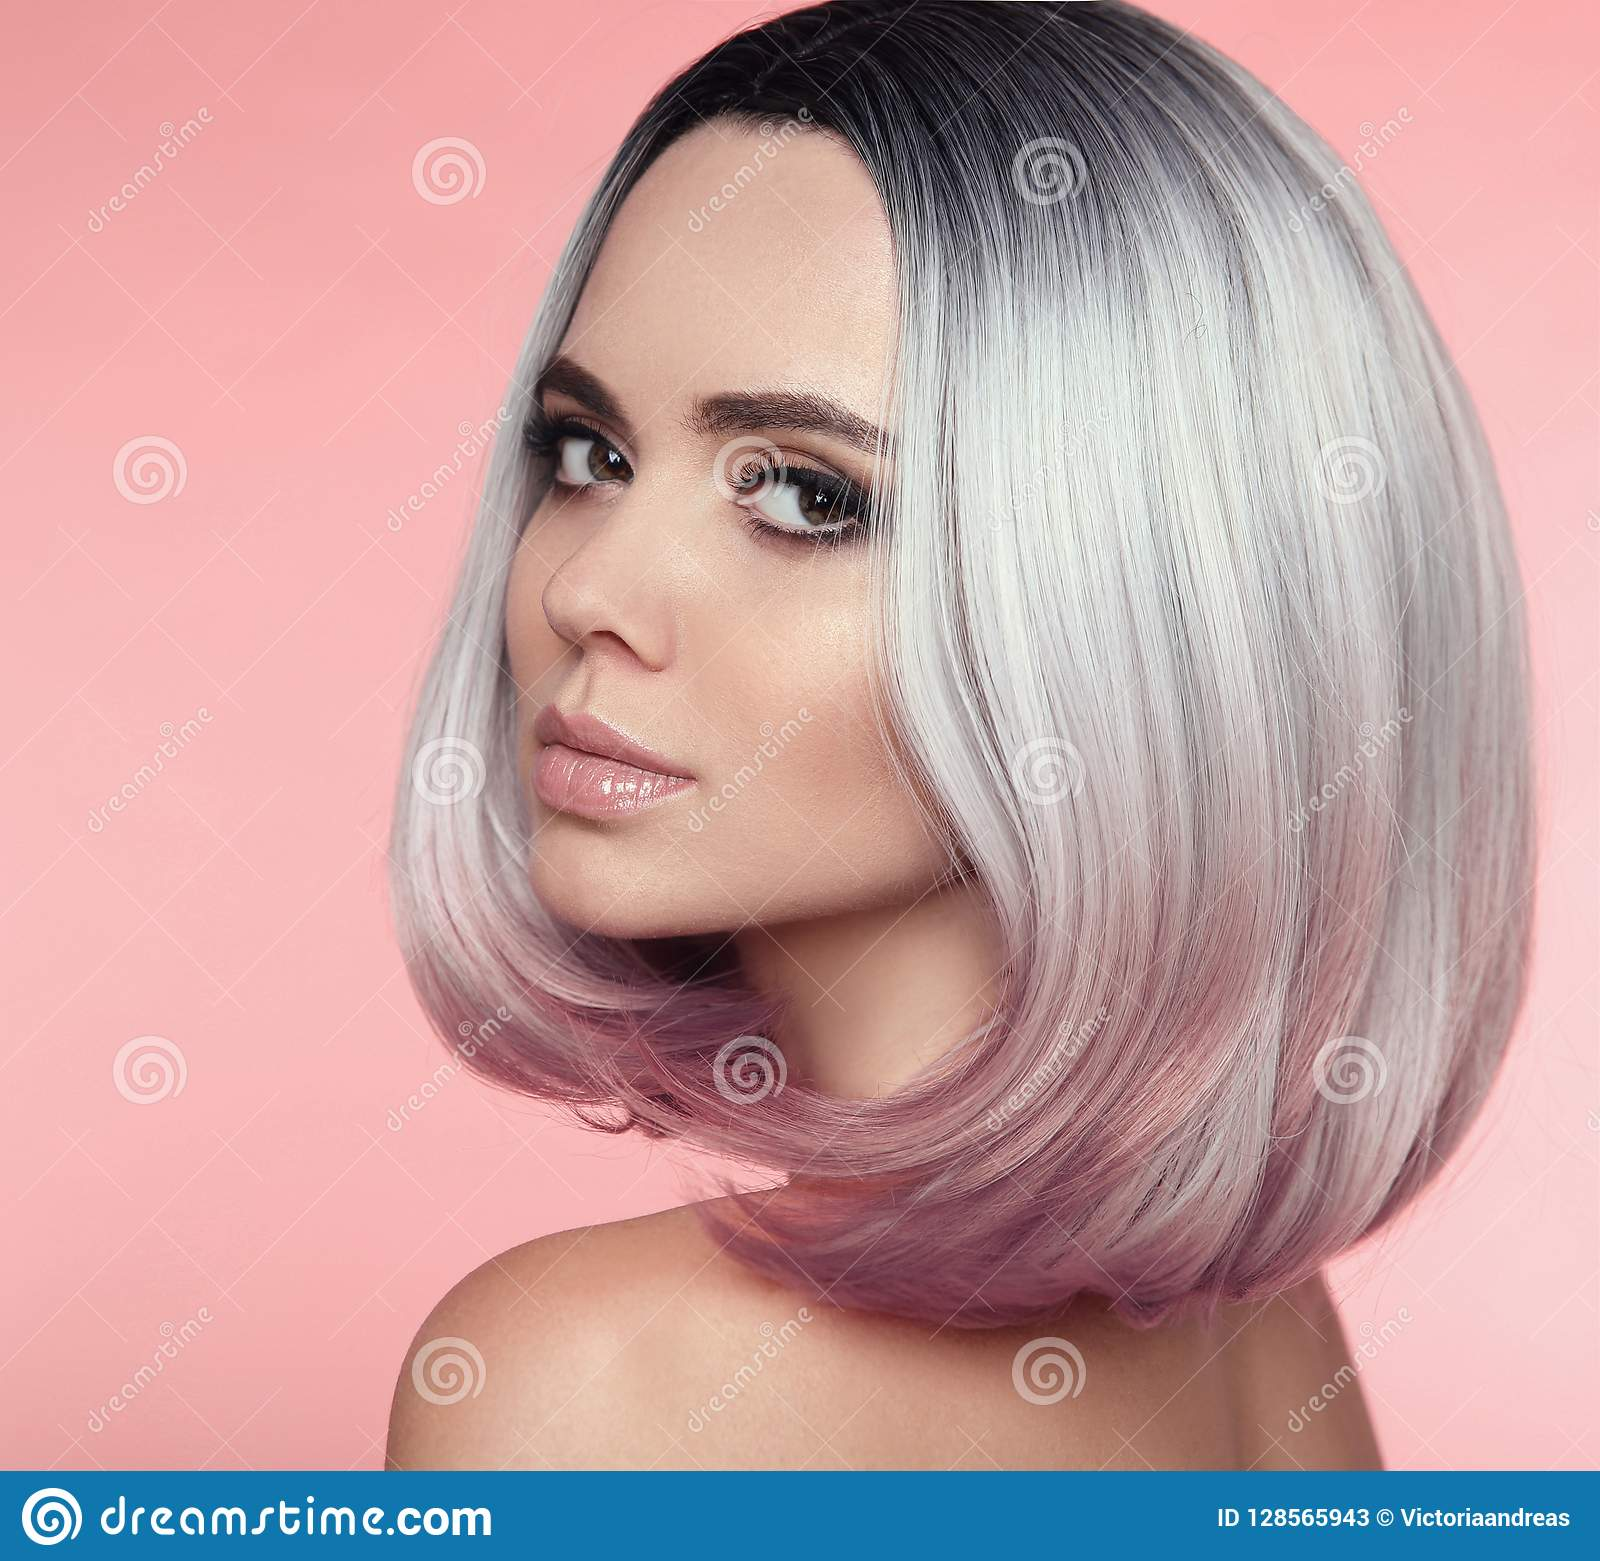 Girl Portrait Of Ombre Bob Short Hairstyle Beautiful Hair Color